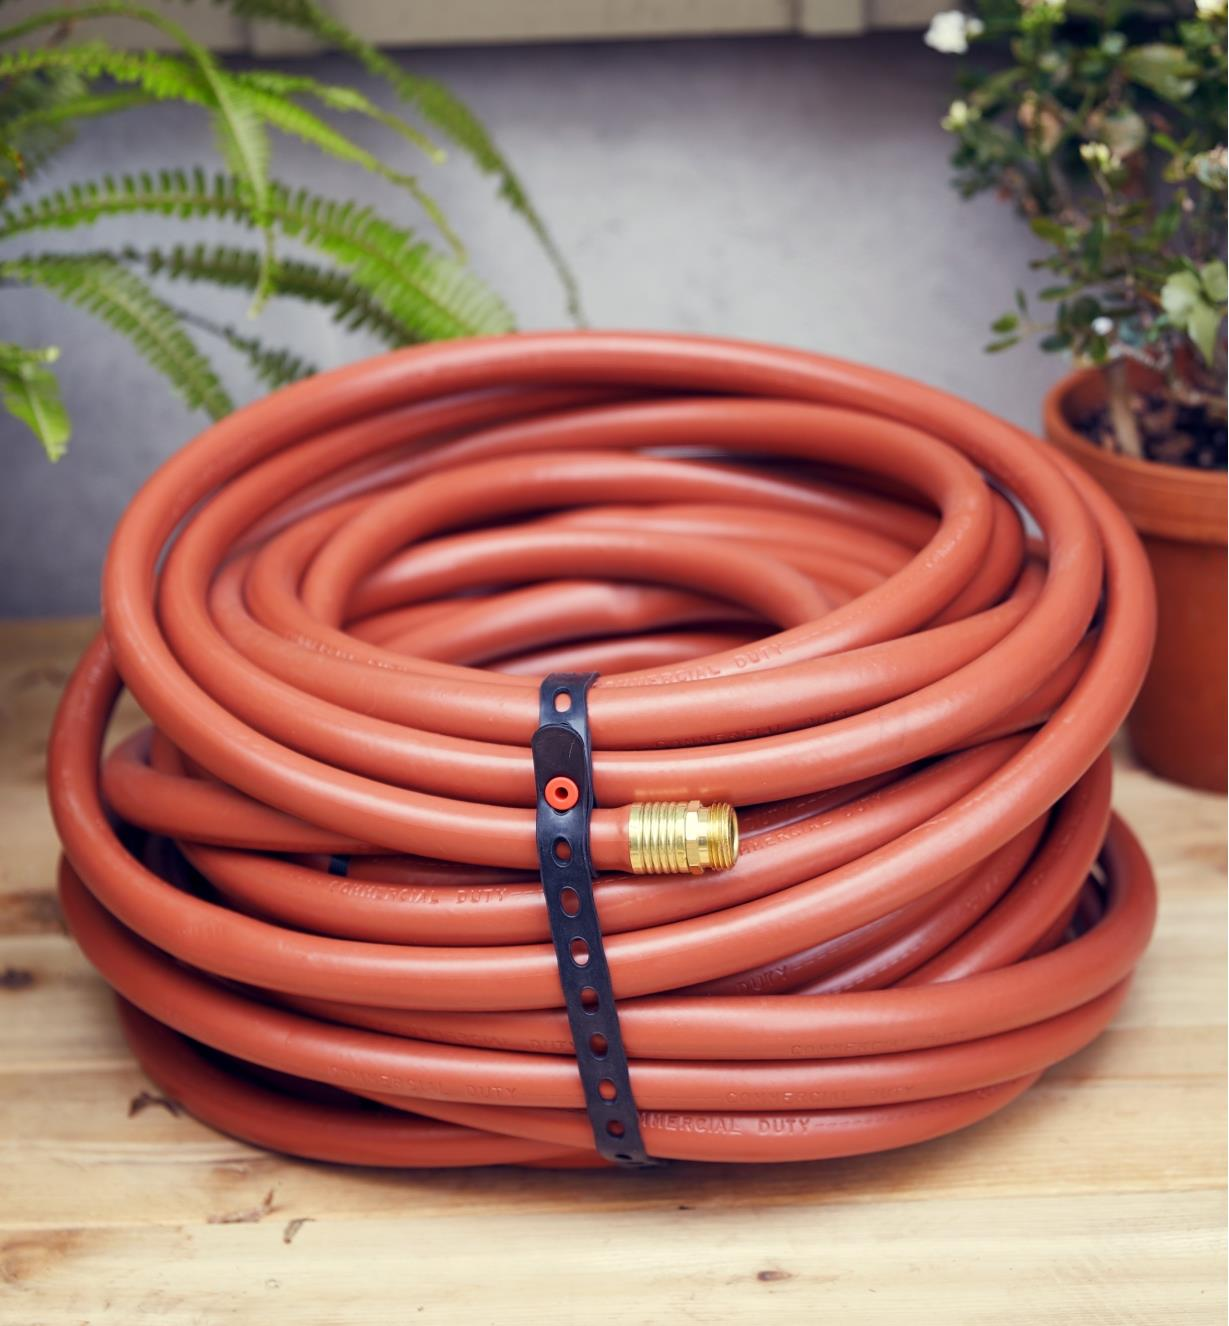 A coiled garden hose secured with a Wrap-N-Strap